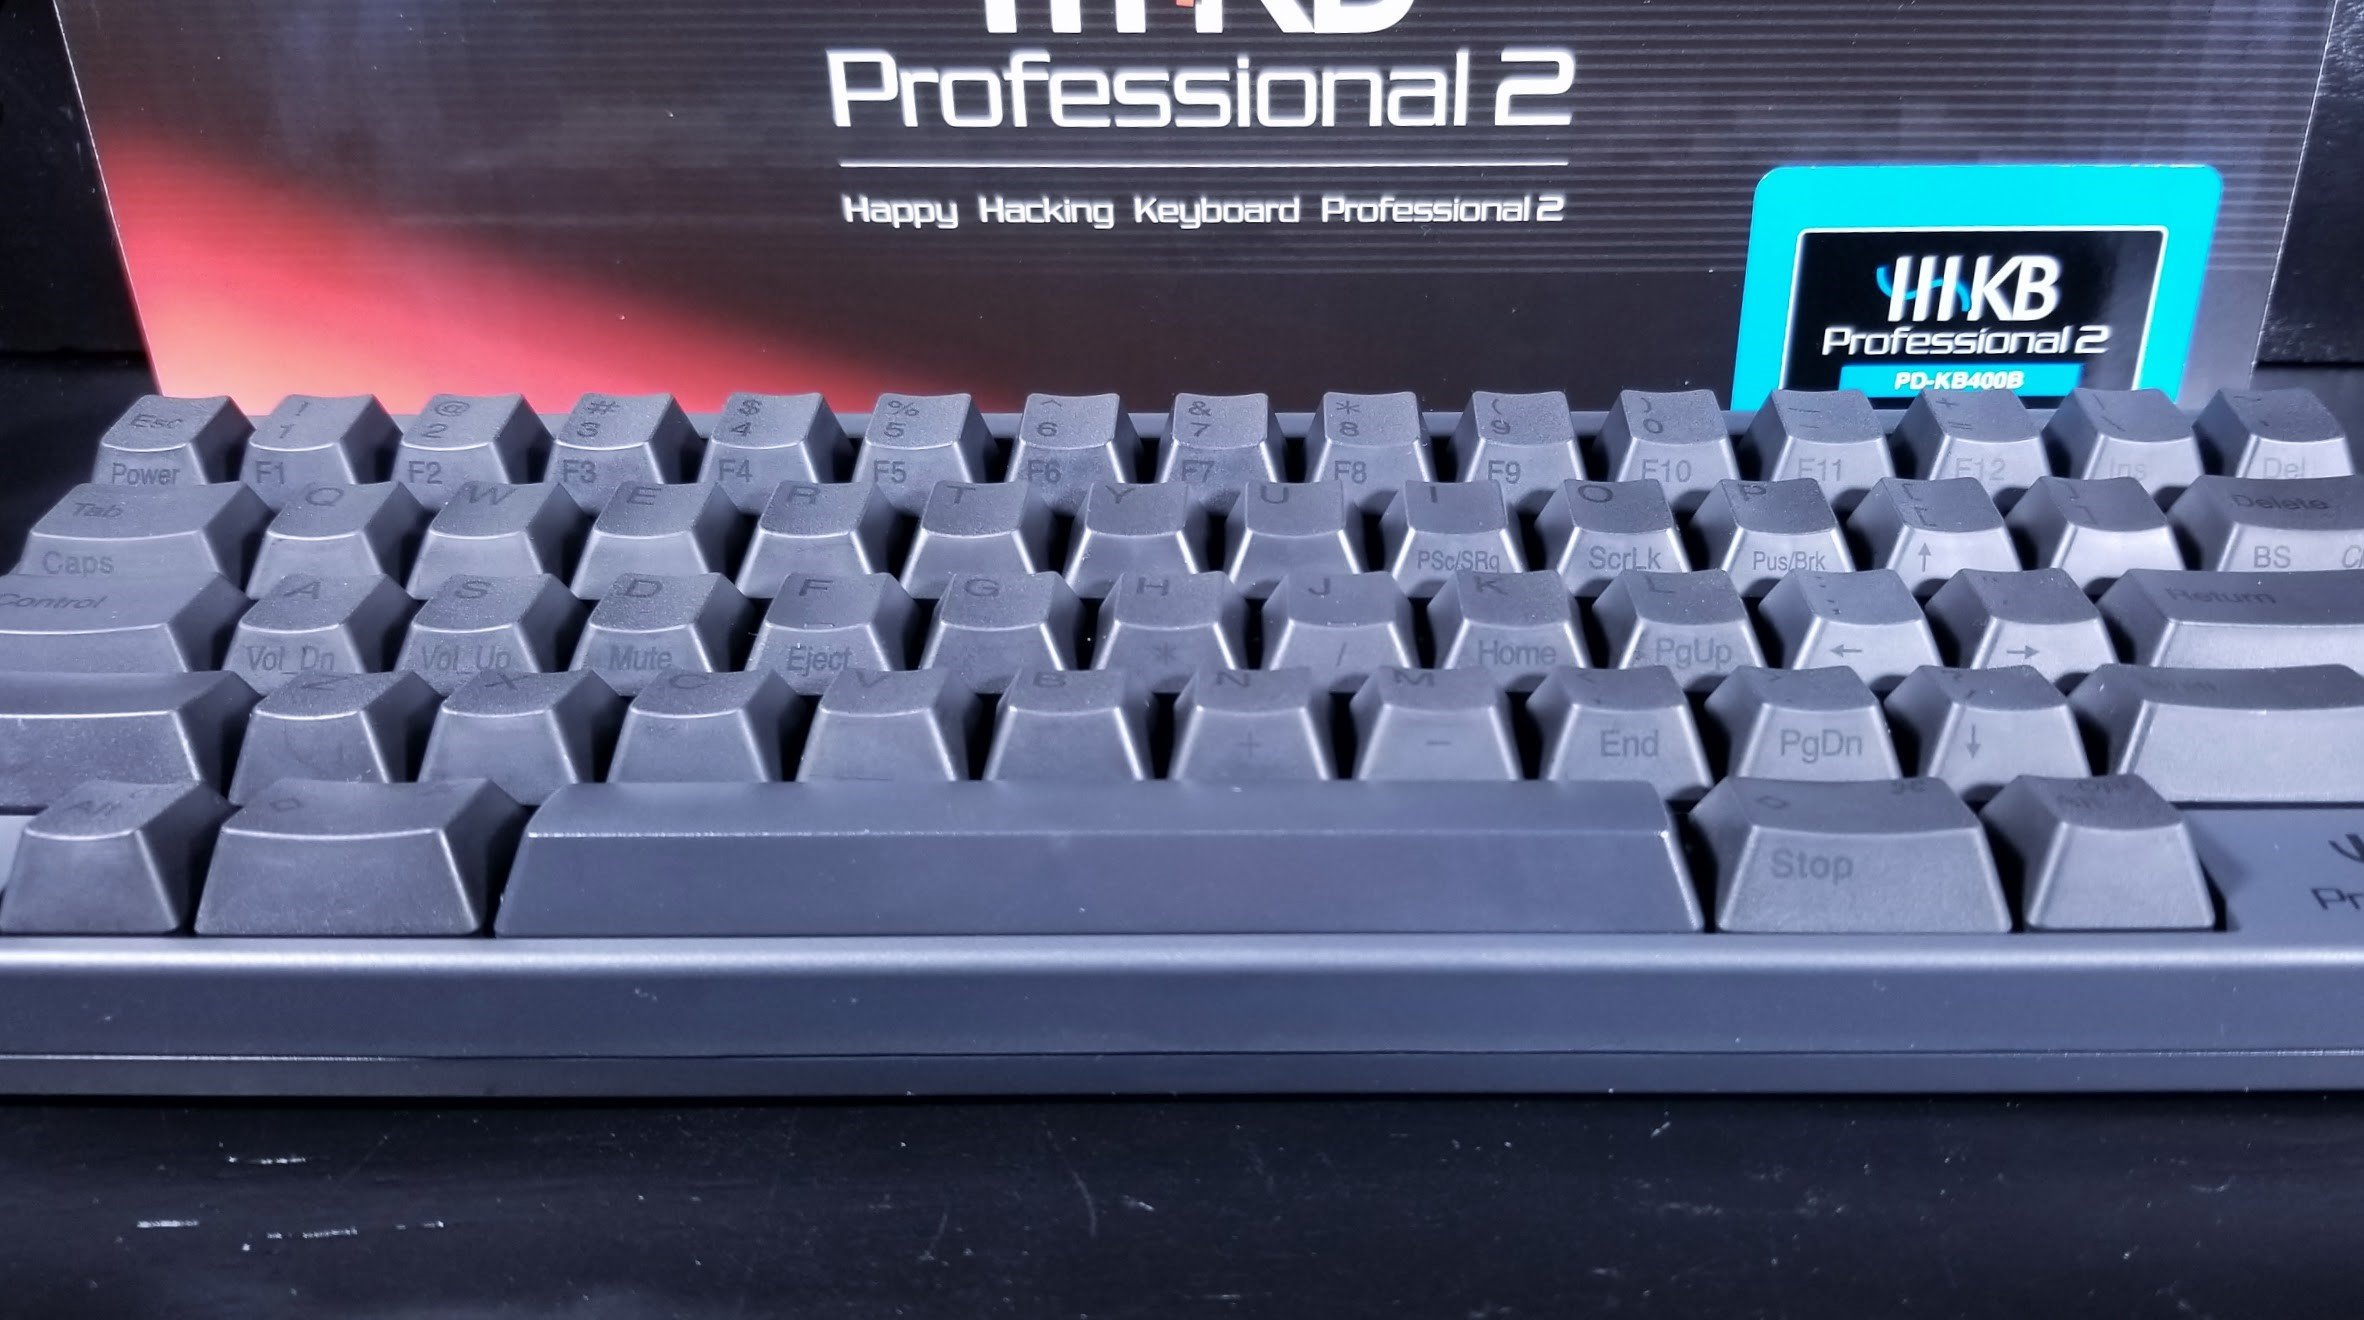 Happy Hacking Keyboard Professional 2 Review